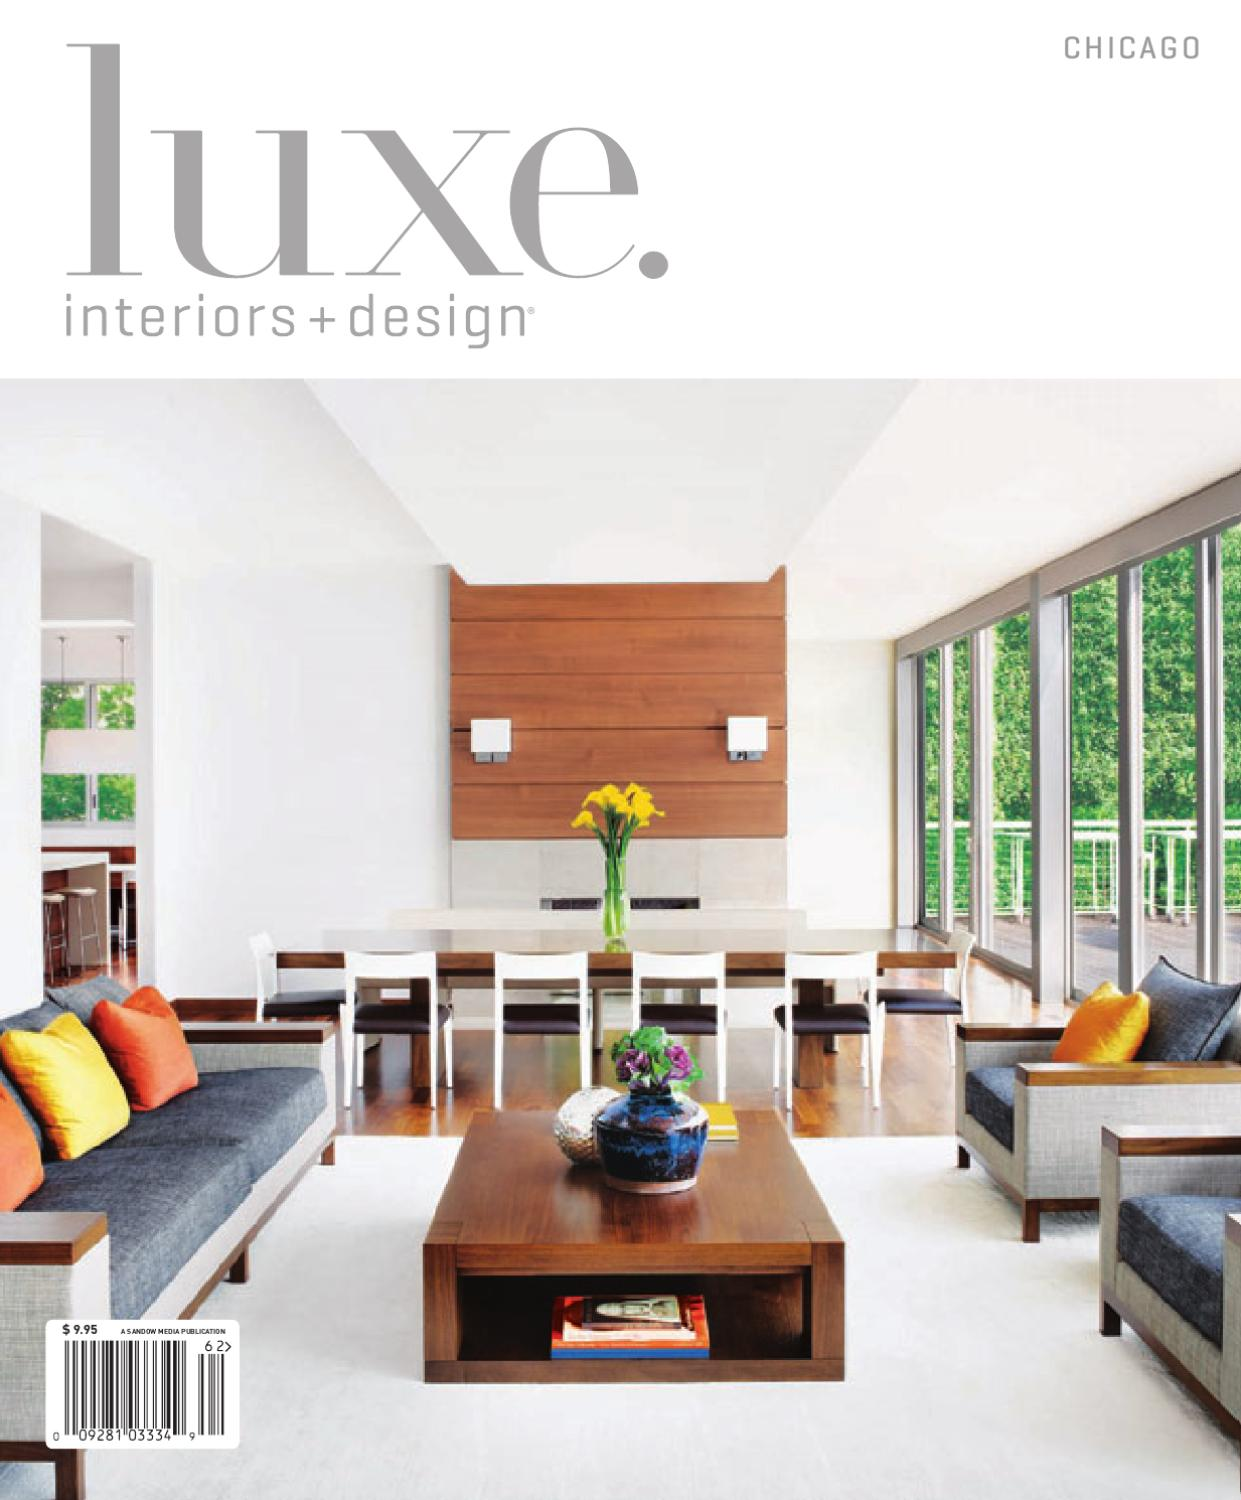 Interio Sofa Marilyn Luxe Interior Design Chicago By Sandow Media Issuu